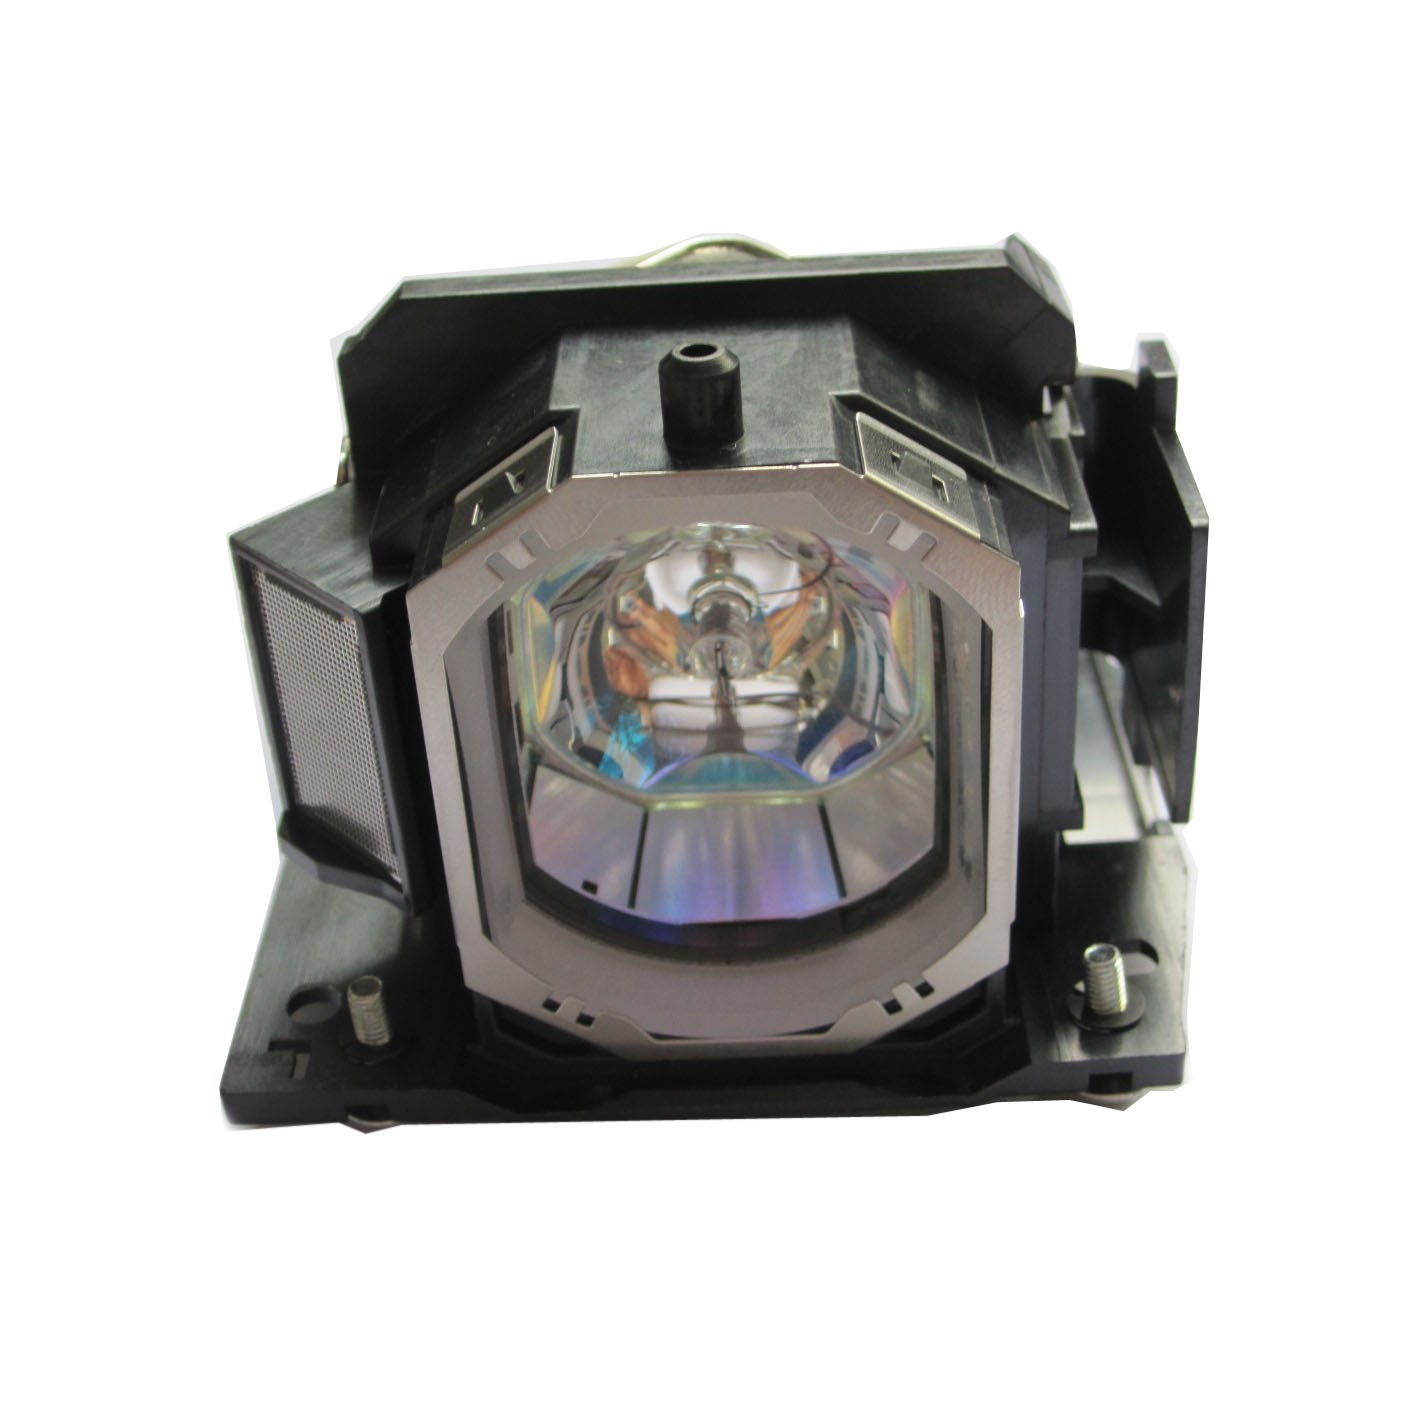 DLP Projector Replacement lamp Bulb Module For NEC NP03LP 50031756 NP60 by HCDZ (Image #1)